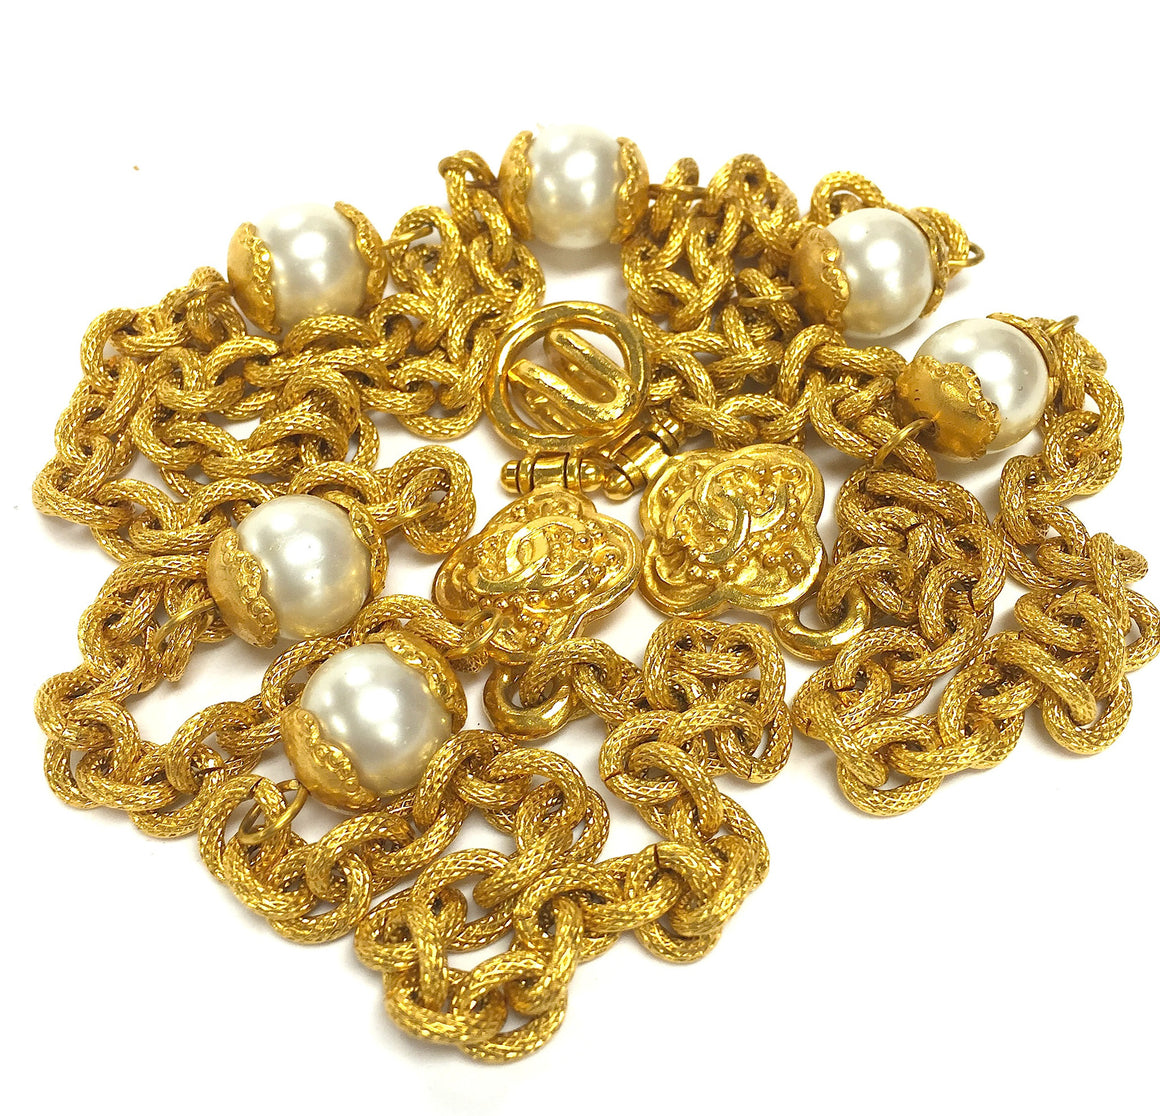 bisbiz.com CHANEL  Vintage Autumn '96 Gilt Metal Chain Link & Pearl Necklace Sautoir - Bis Luxury Resale